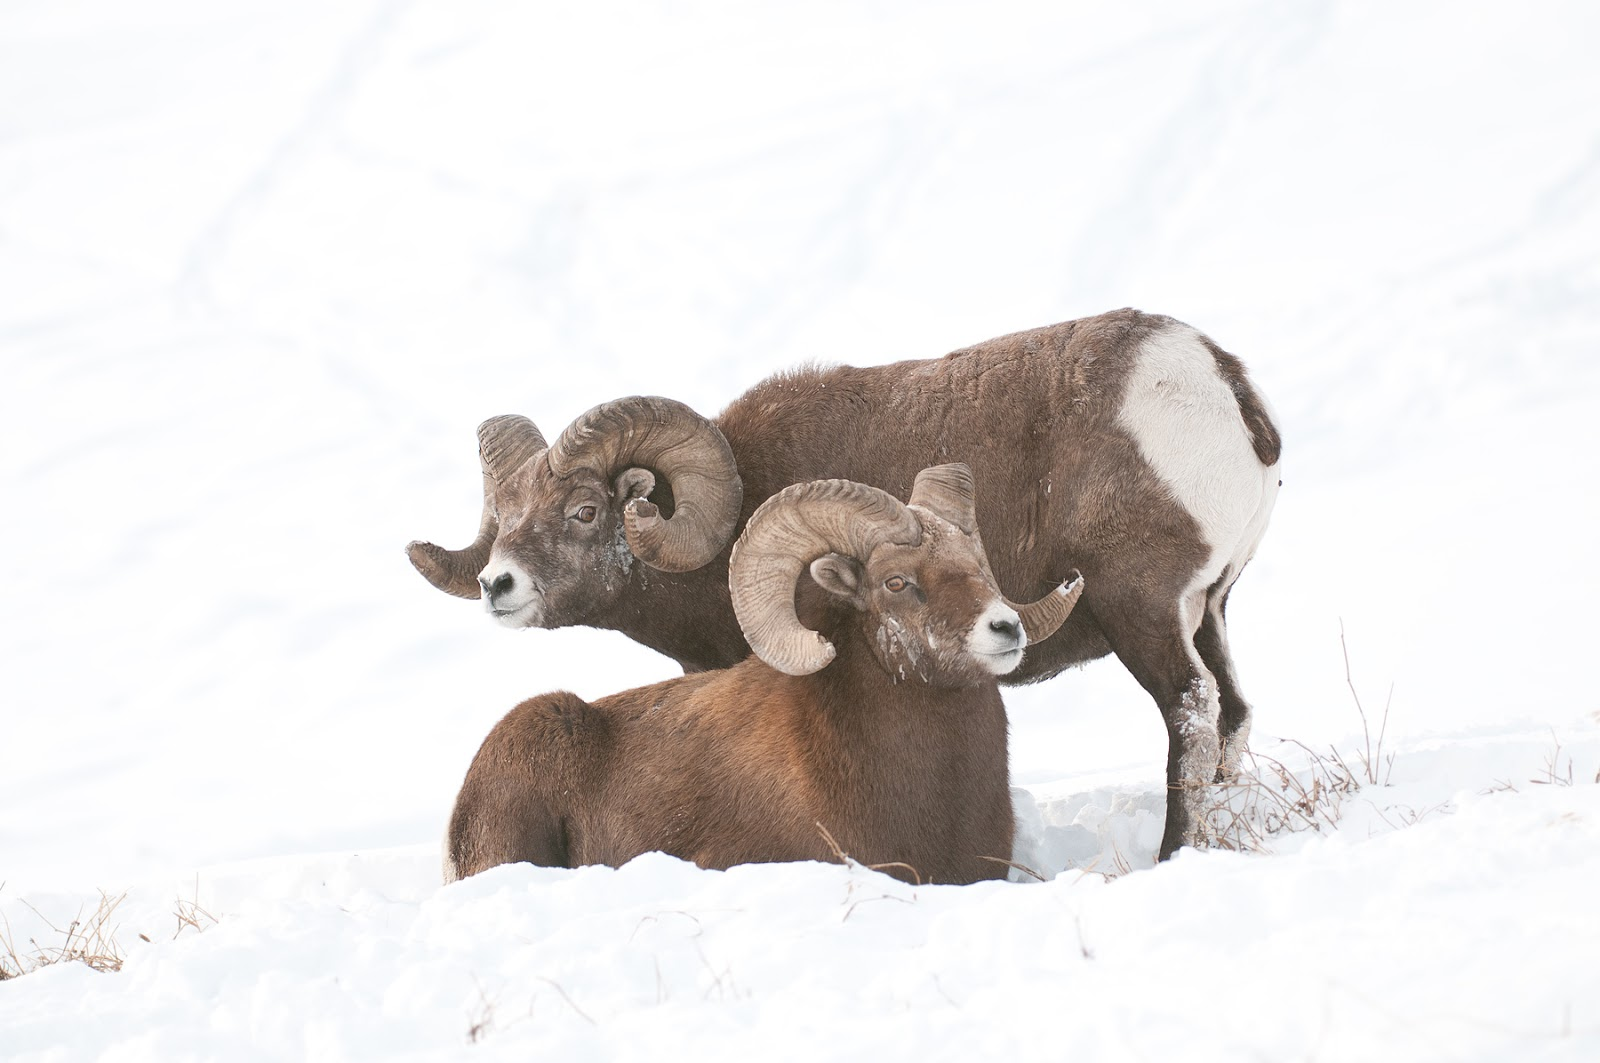 Animals of the world: Big Horn Sheep